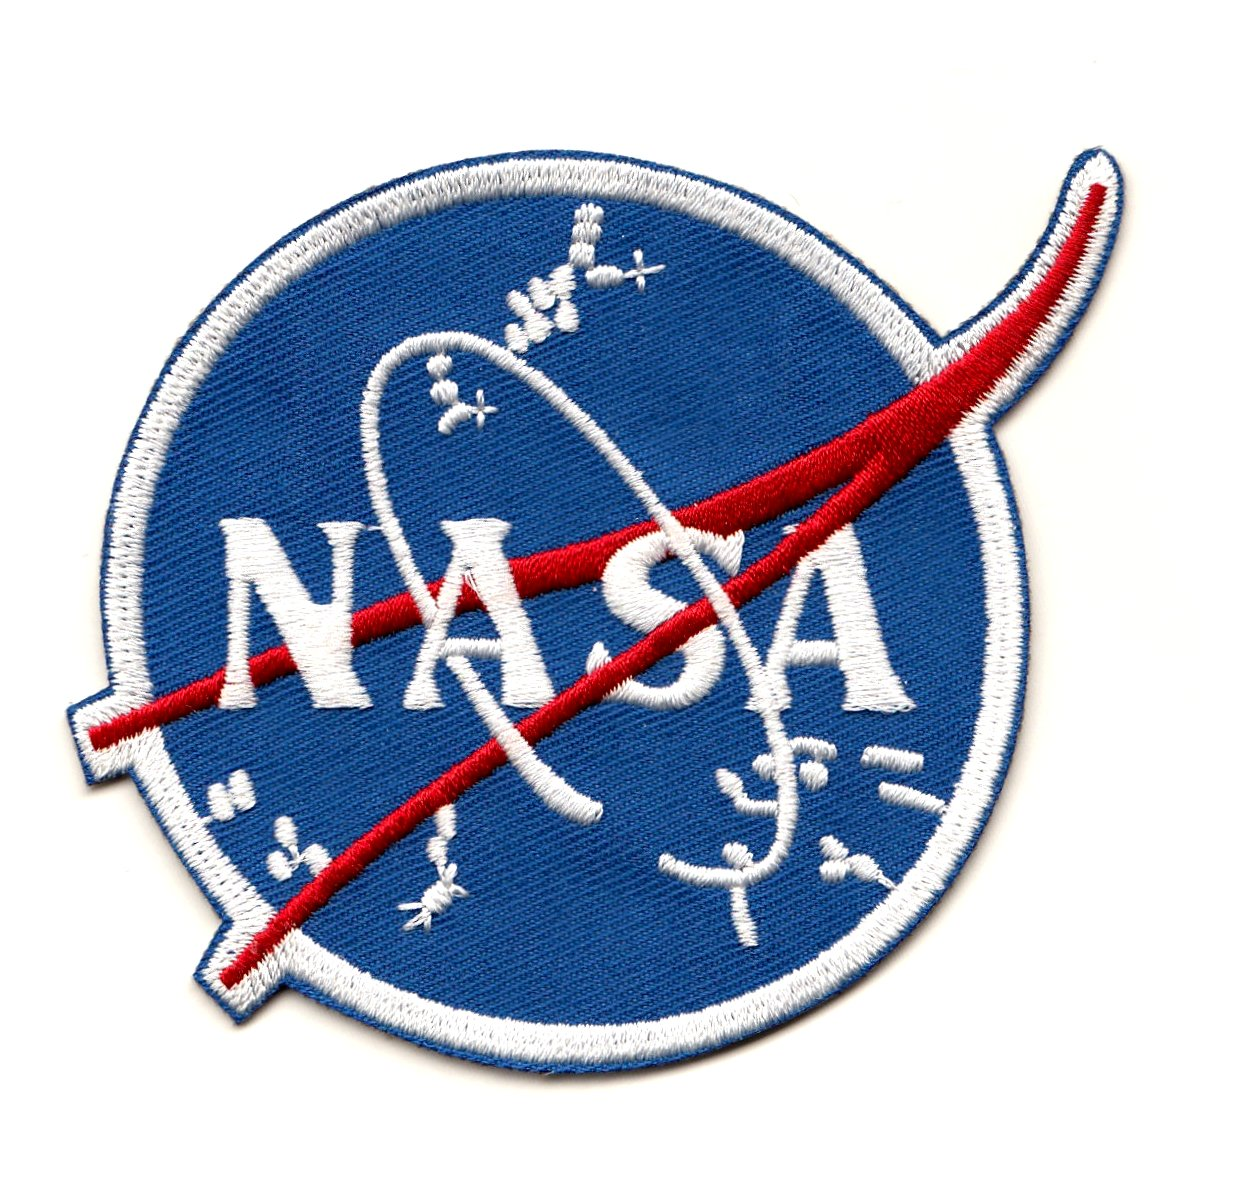 astronaut wings insignia - photo #44